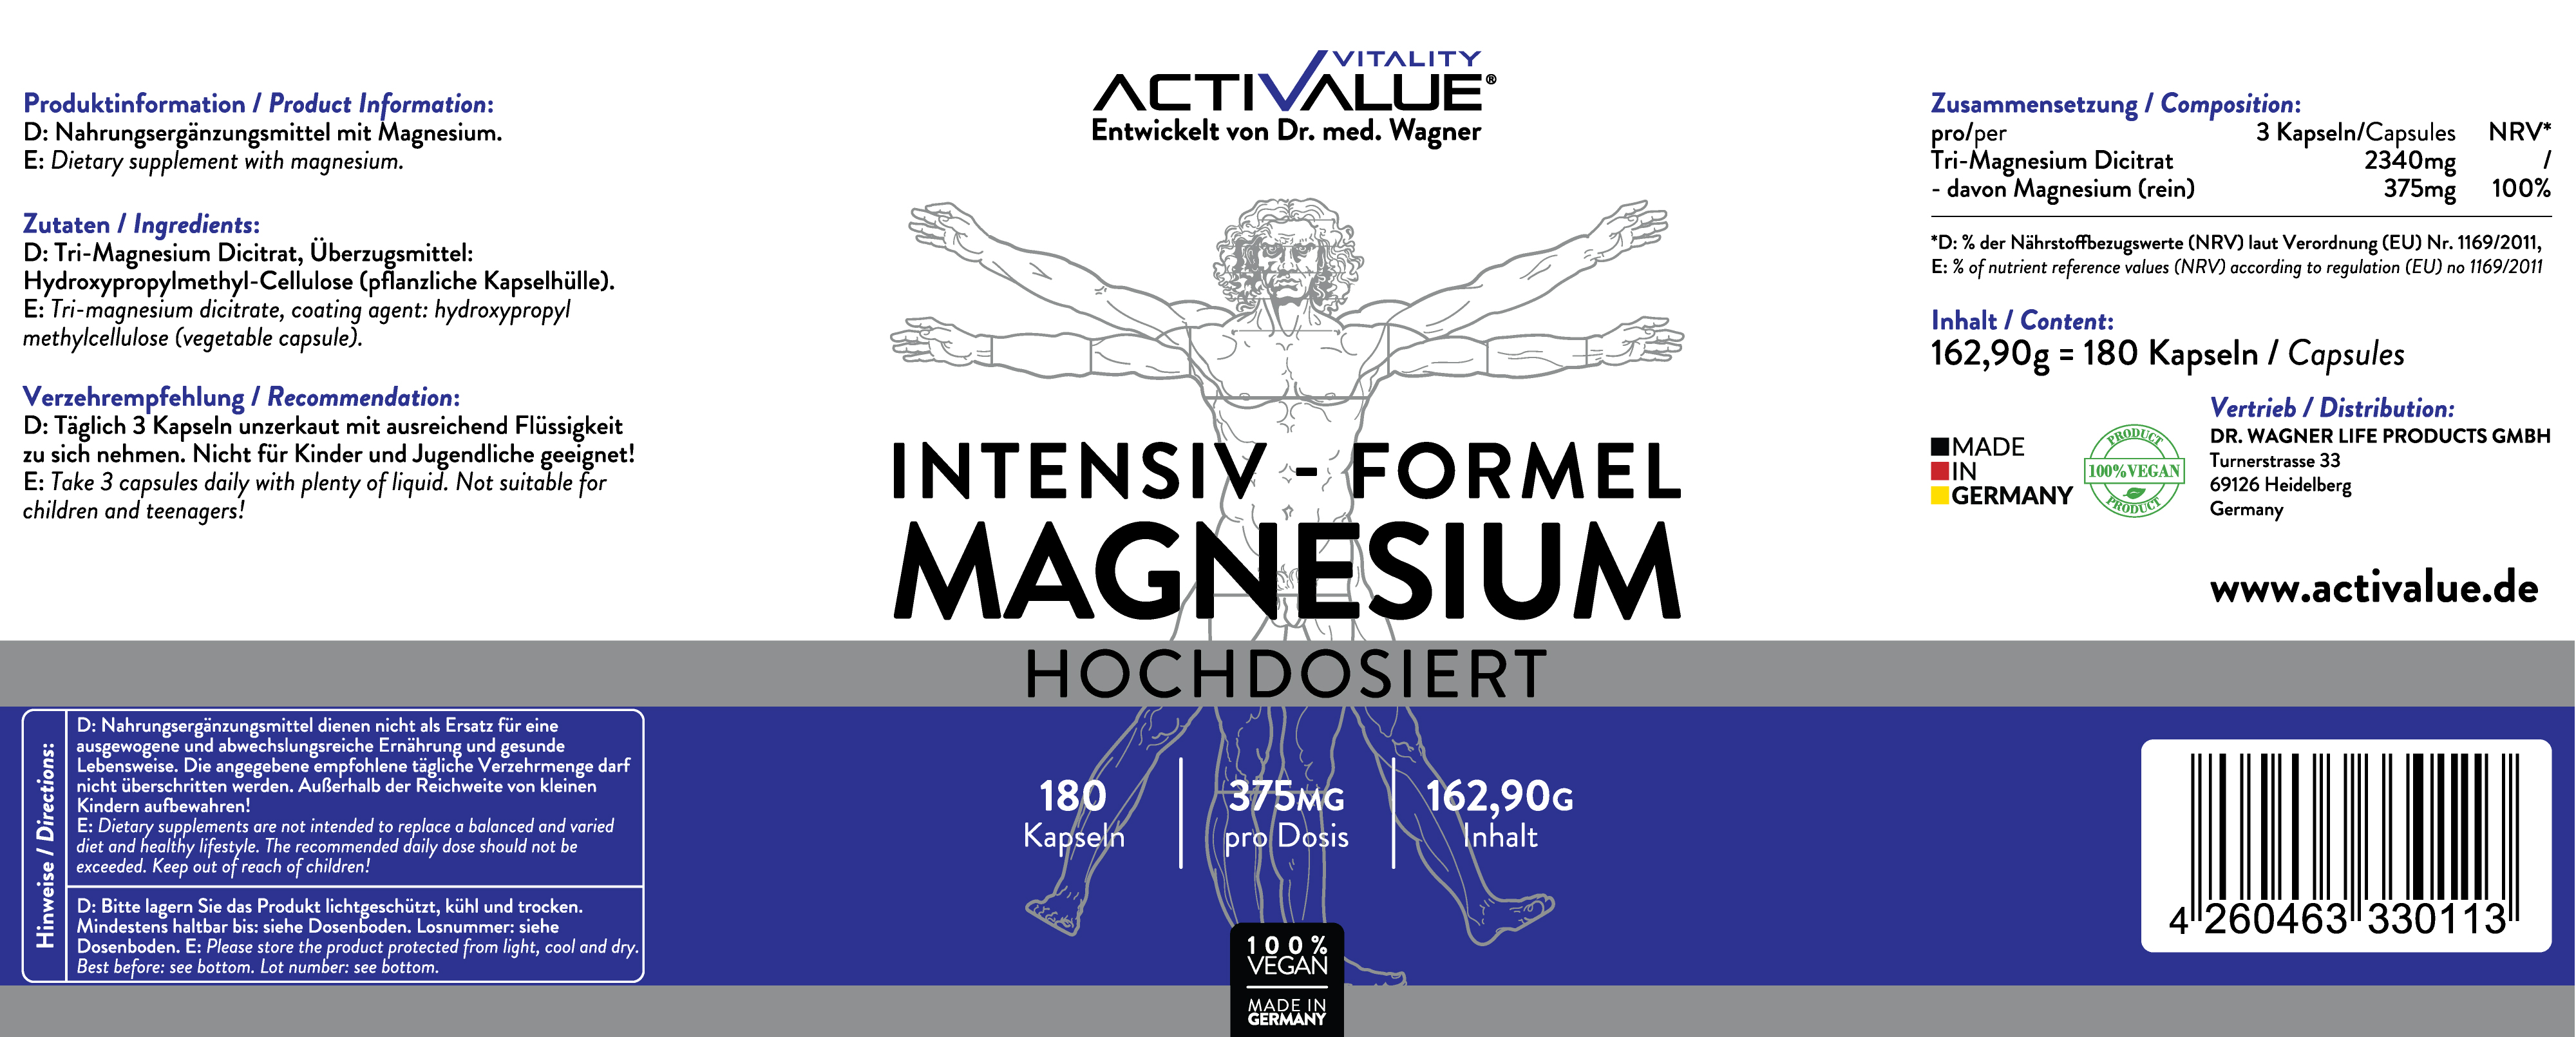 ACTIVALUE_MAGNESIUM_Label_4k